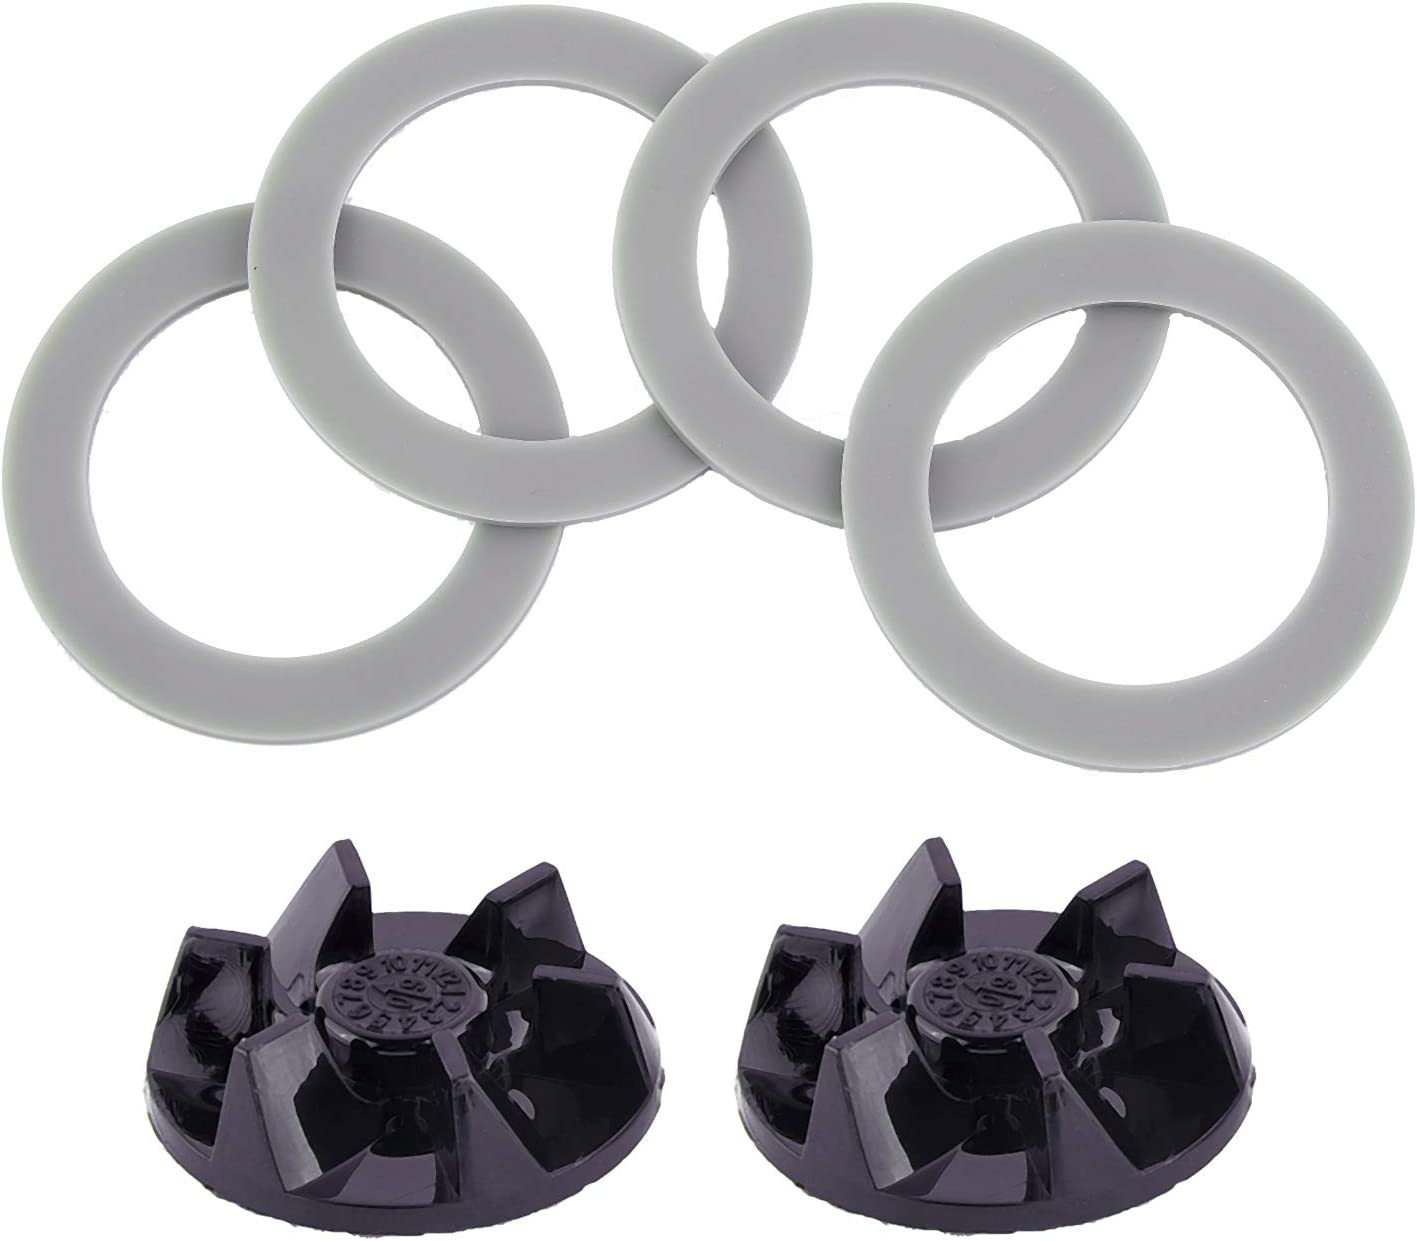 Timsec 4Pcs Blender Rubber Gasket Sealing O-ring CUCB-456-3 and Blender Blade Driver Clutch SPB7-20TXN, Replacement Parts Compatible with Cuisinart Blenders BFP703 CB7 CB8 CB9 CBT-500